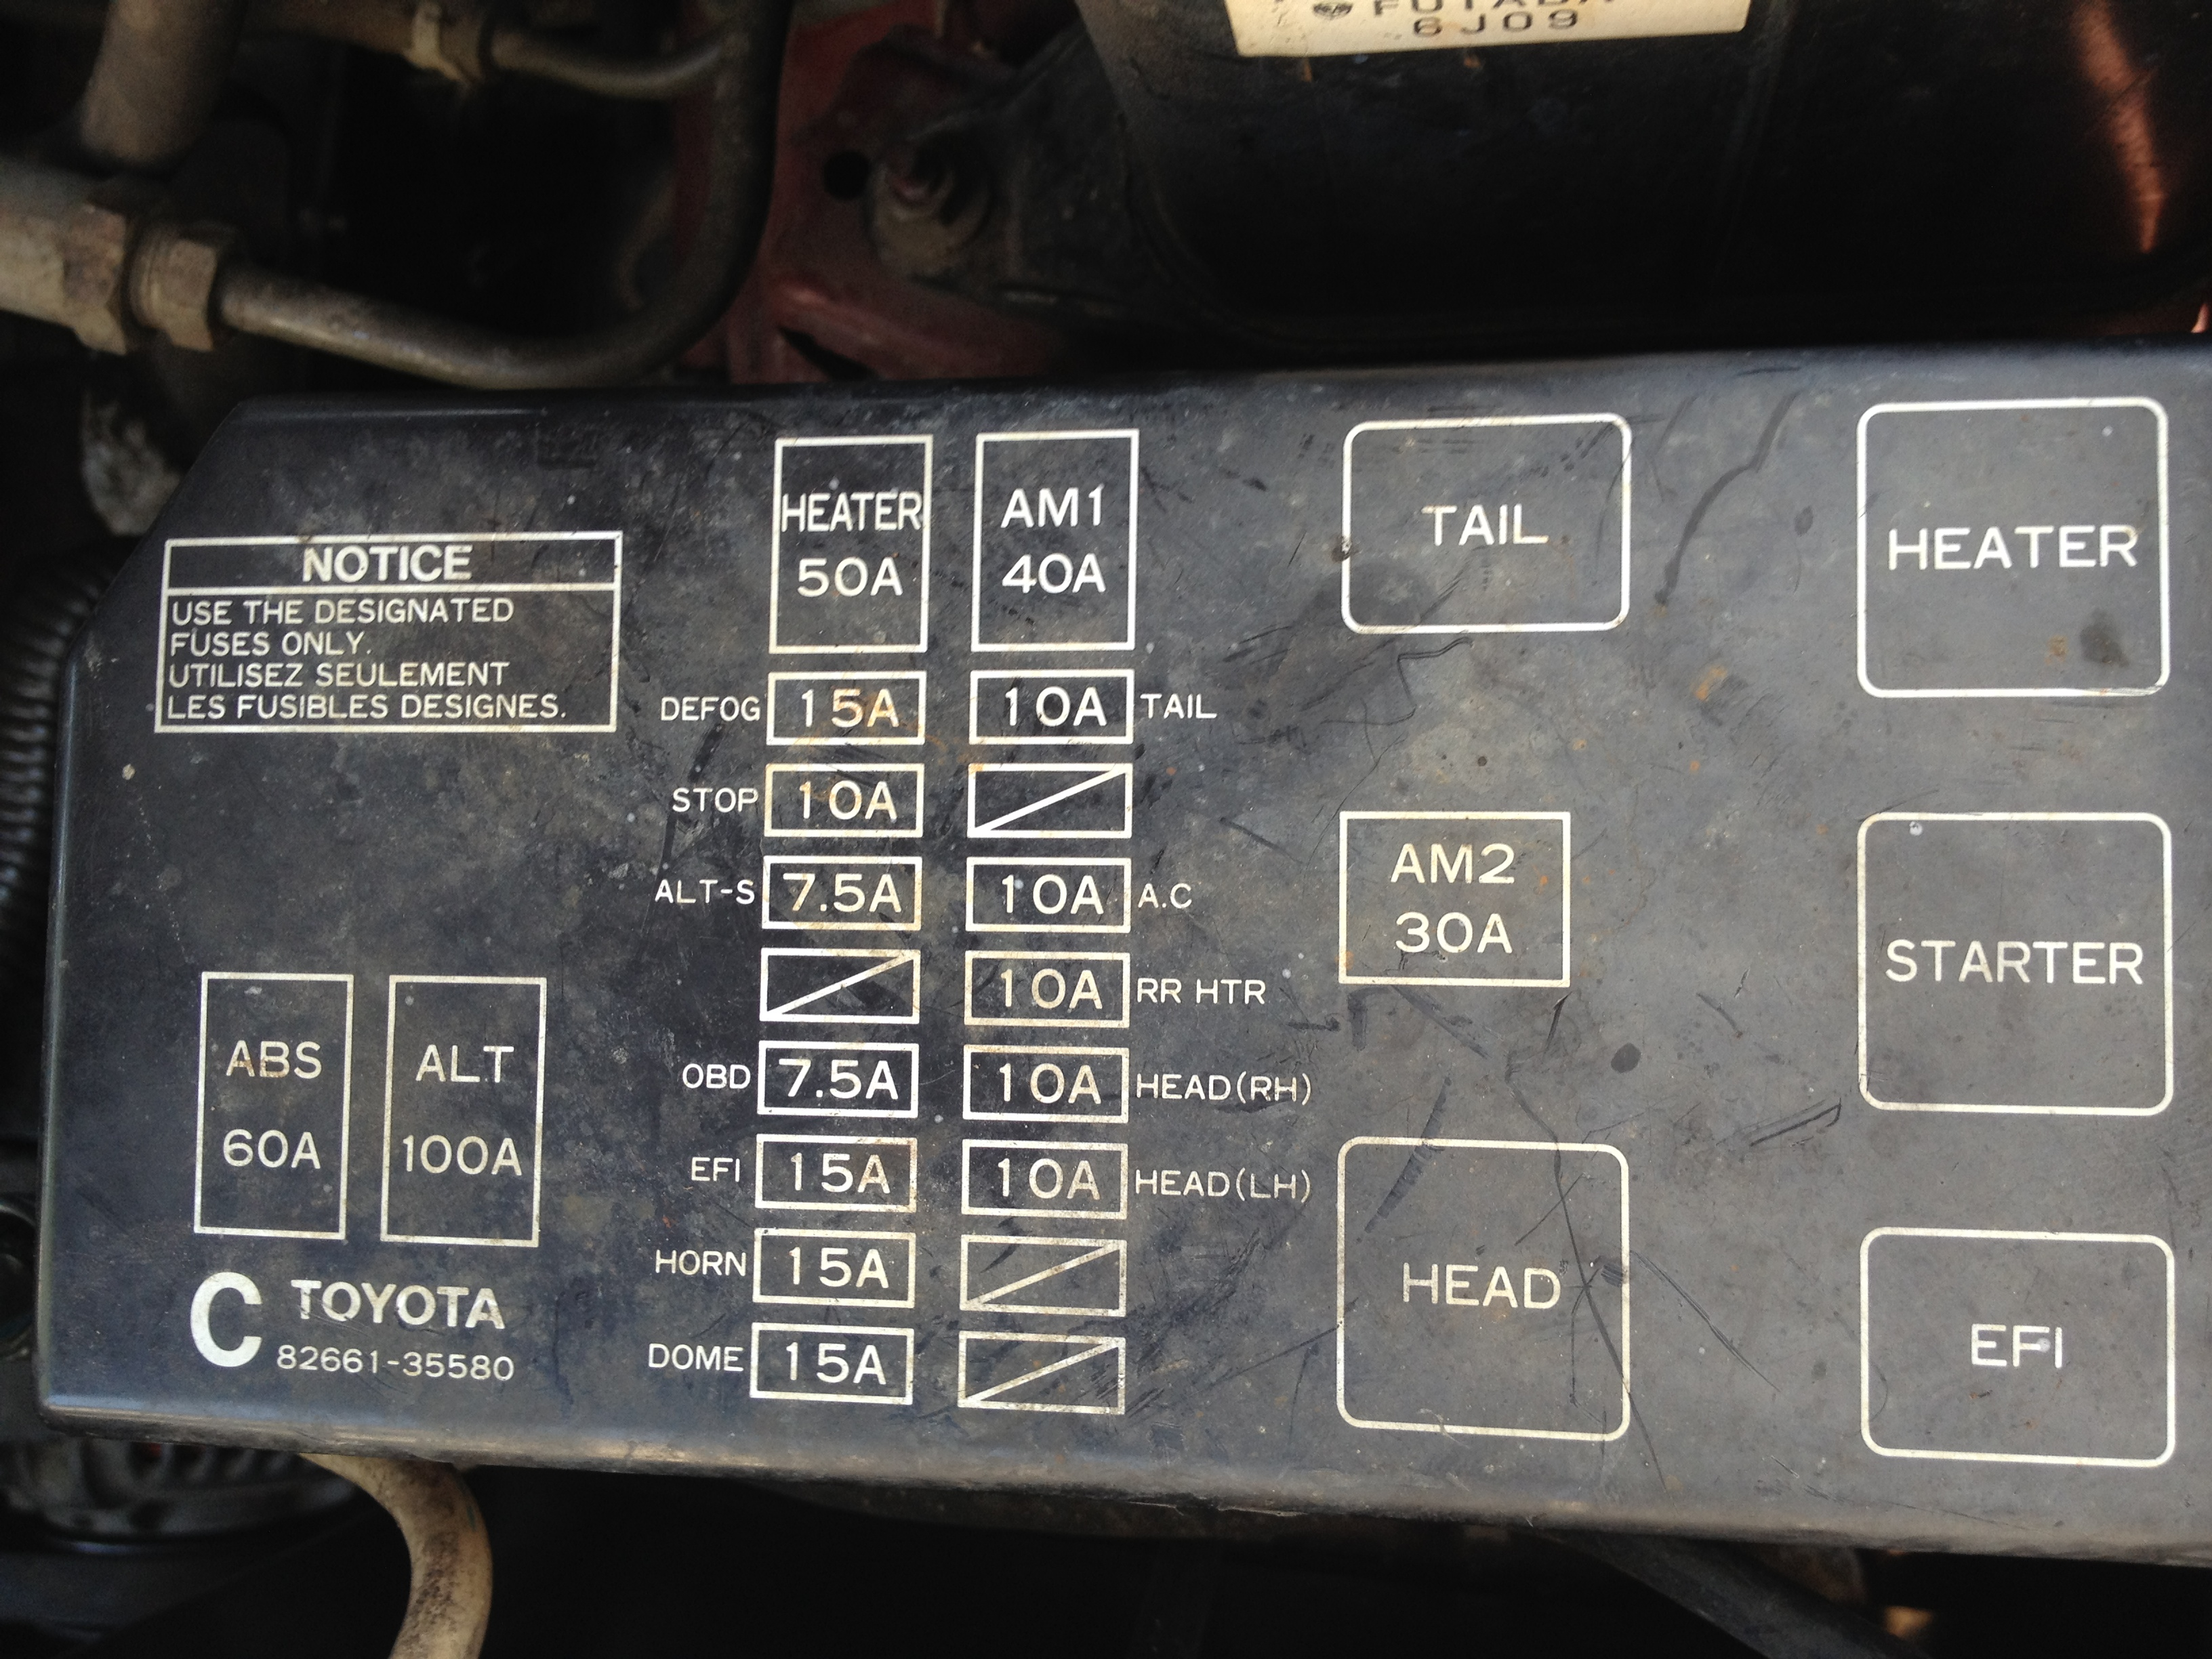 2000 Toyota 4runner Fuse Box Diagram Trusted Wiring Diagrams 1997 Corolla 1996 Pics